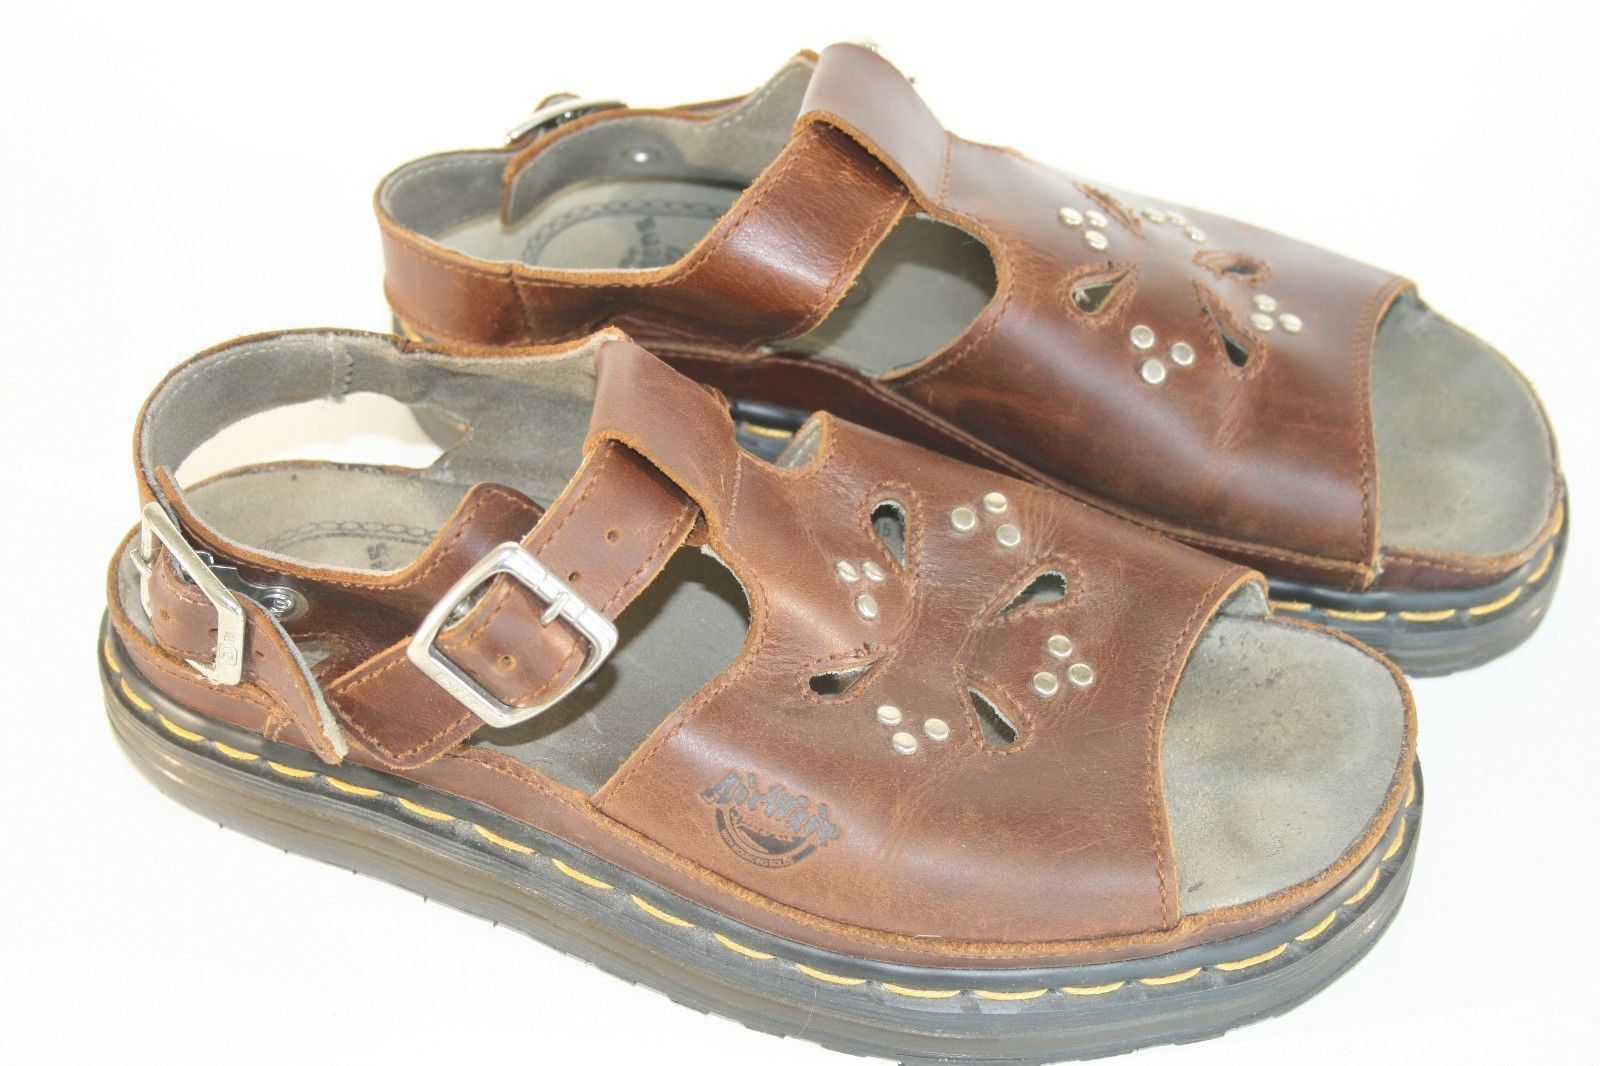 Dr Doc Martens Air Wair Brown Leather Sandals US 9  UK 8  Women's Clean! England - $51.49